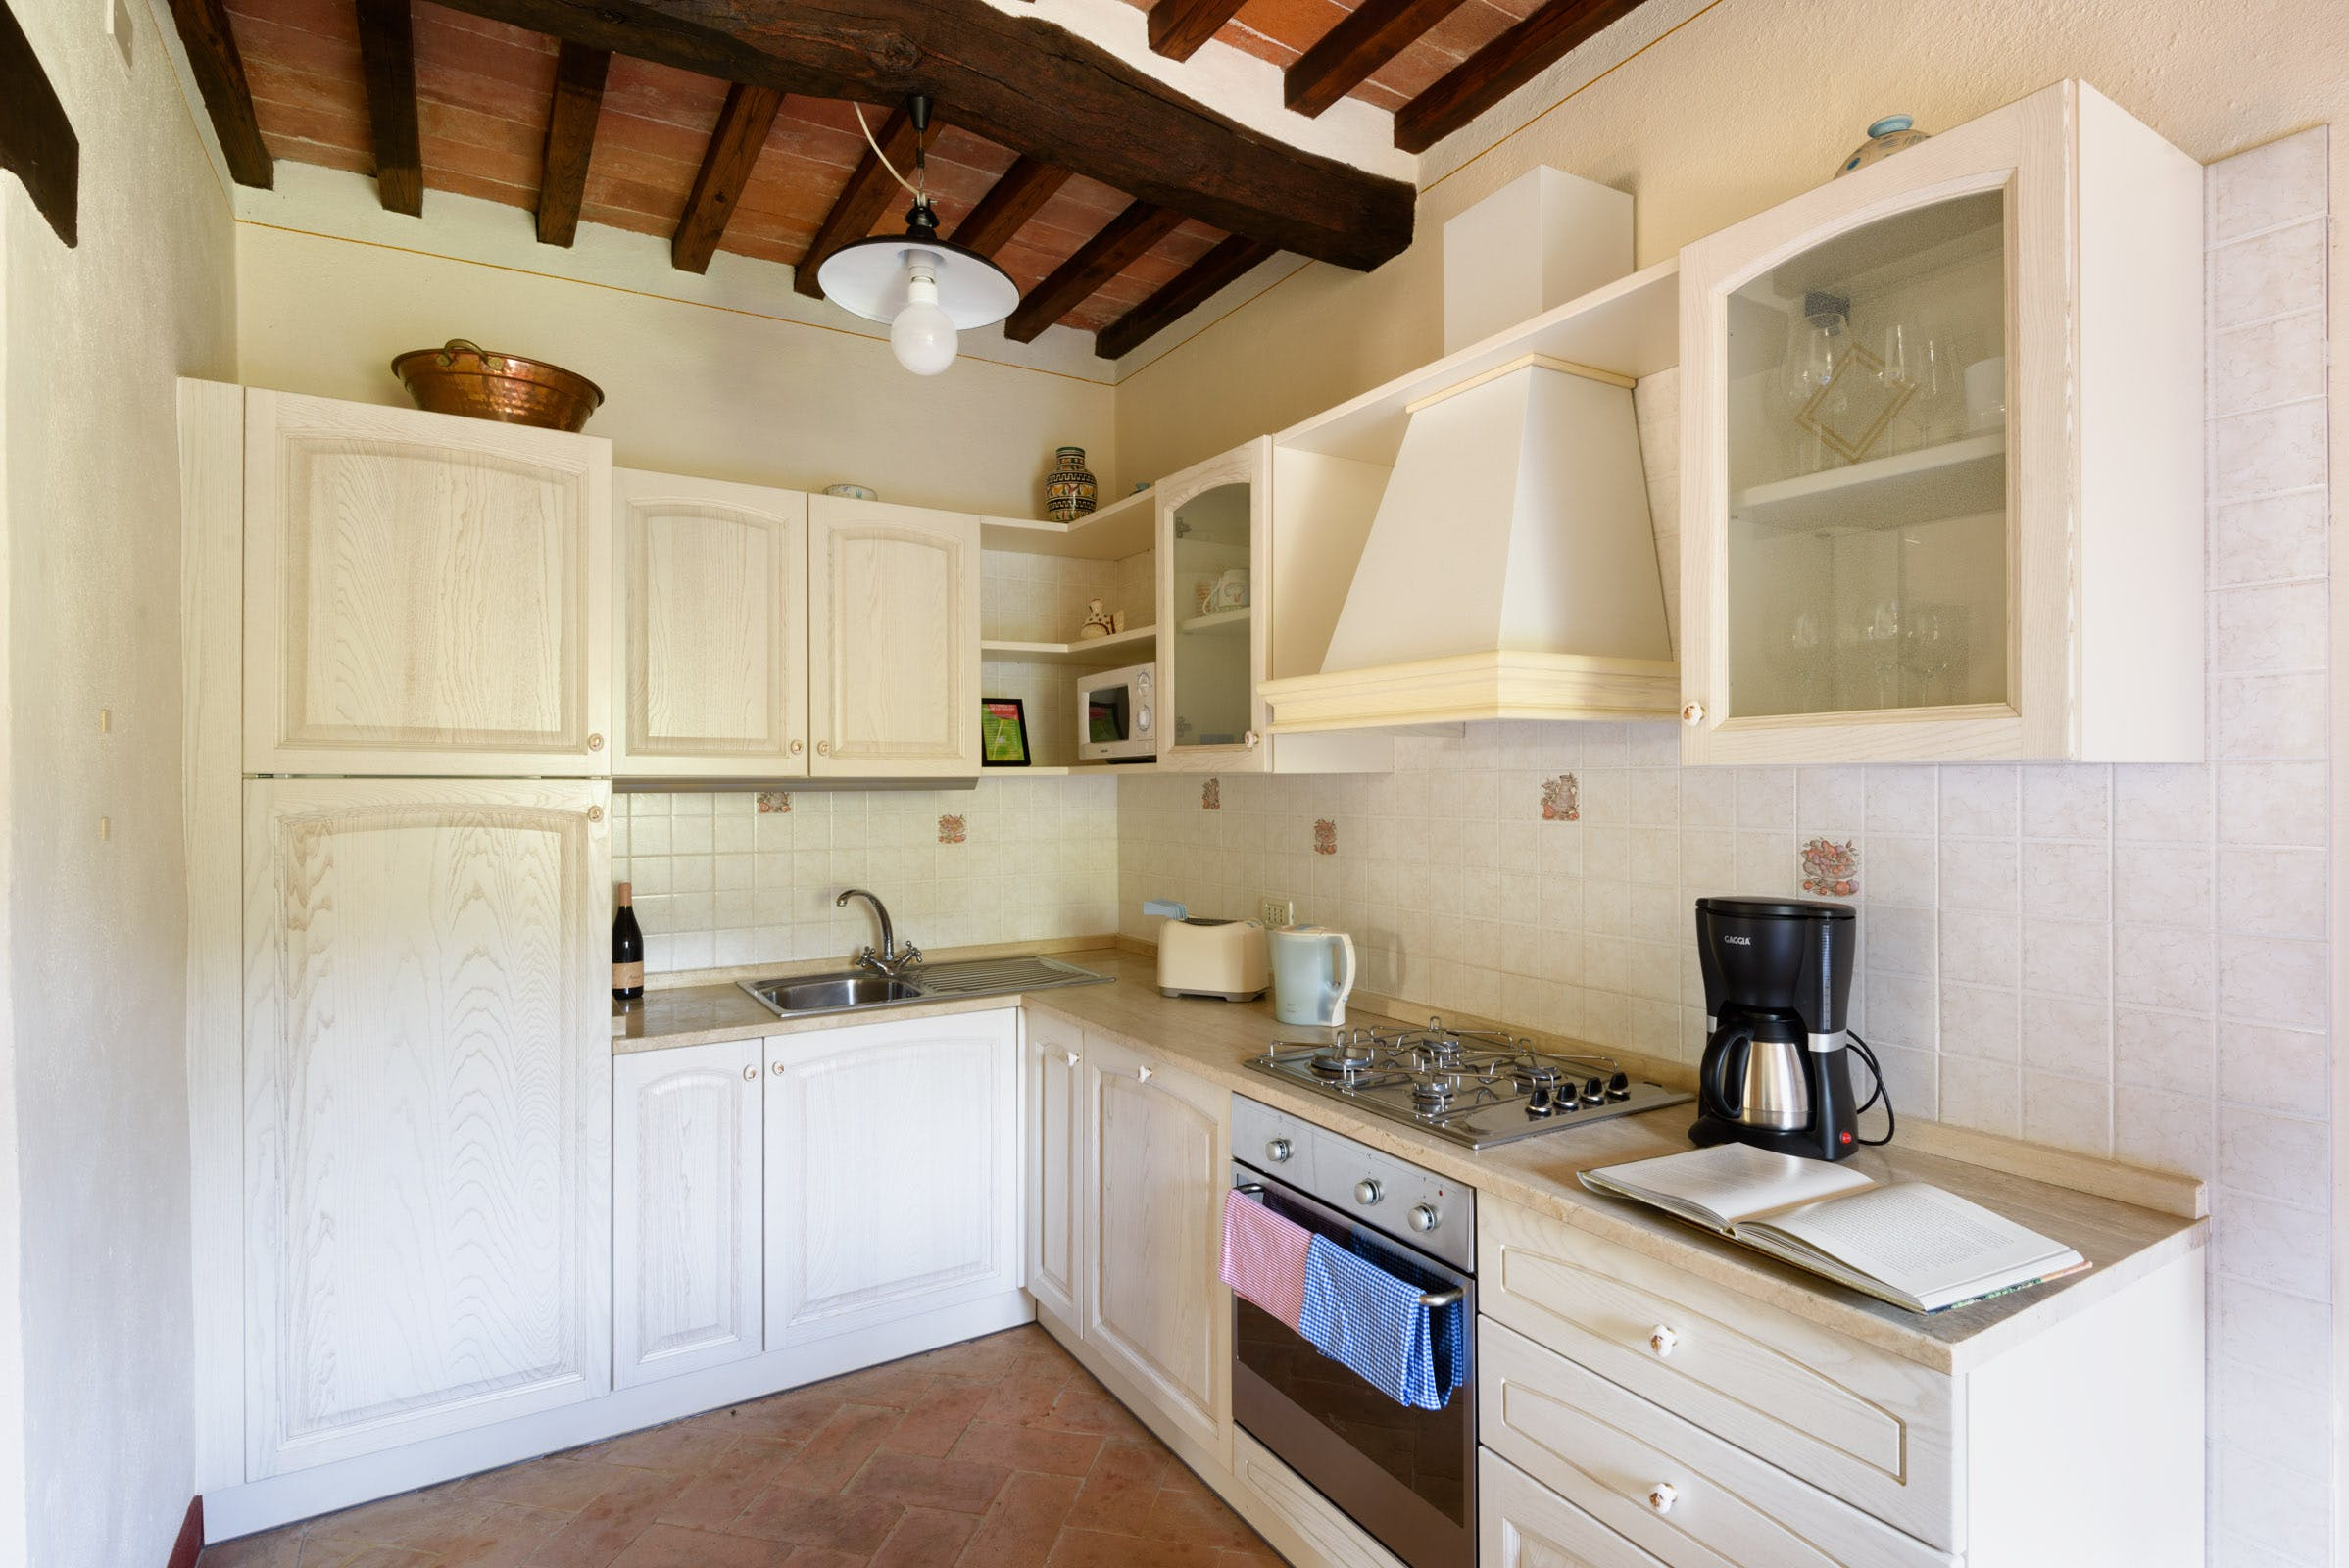 Casa Portagioia Tuscany bed and breakfast , Andreocci suite kitchen facilities